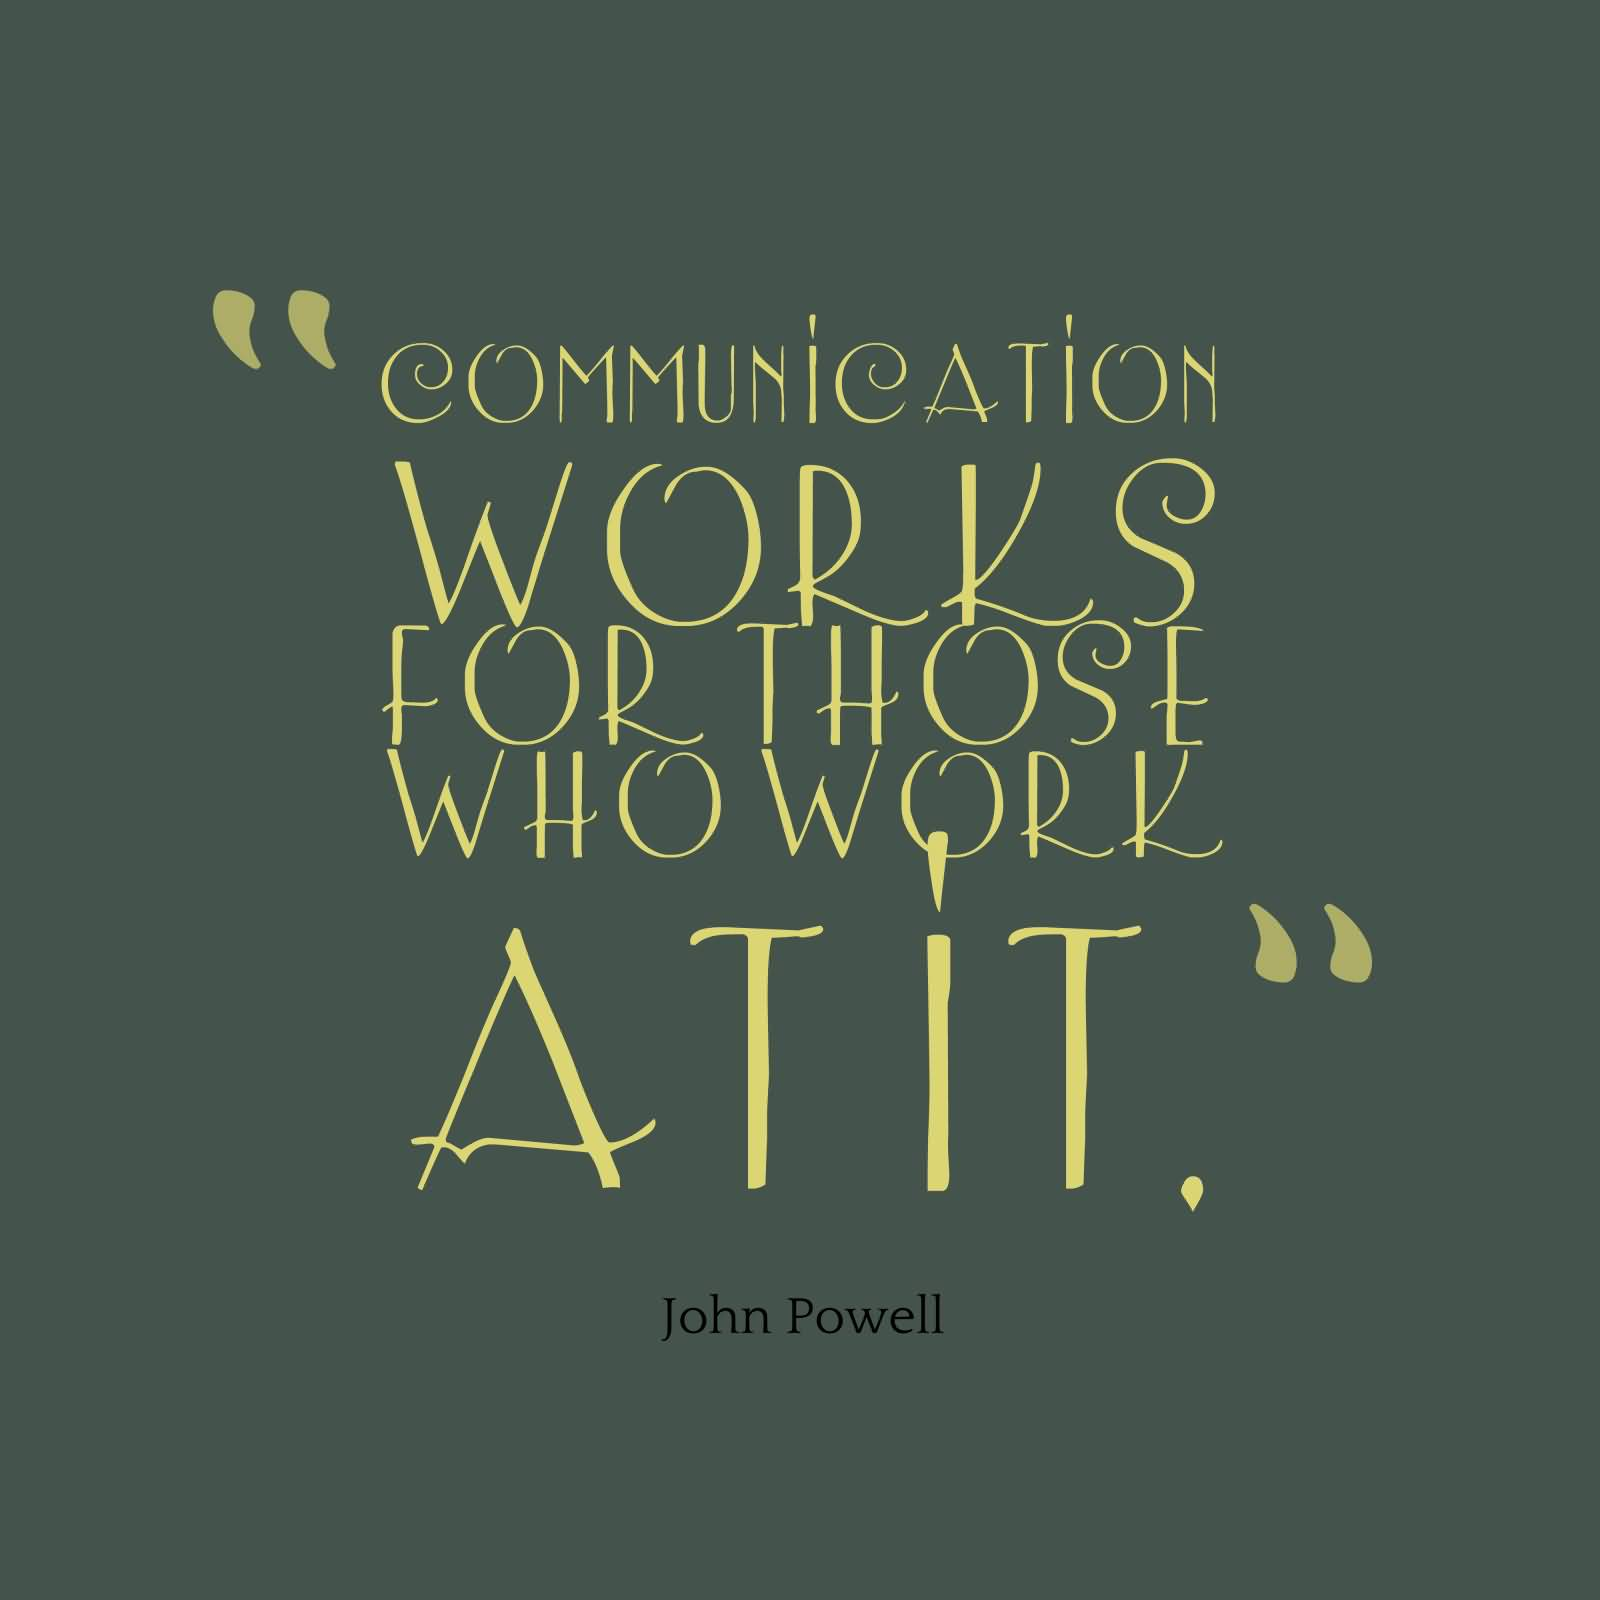 Communication Works For Those Who Work At It. John Powell